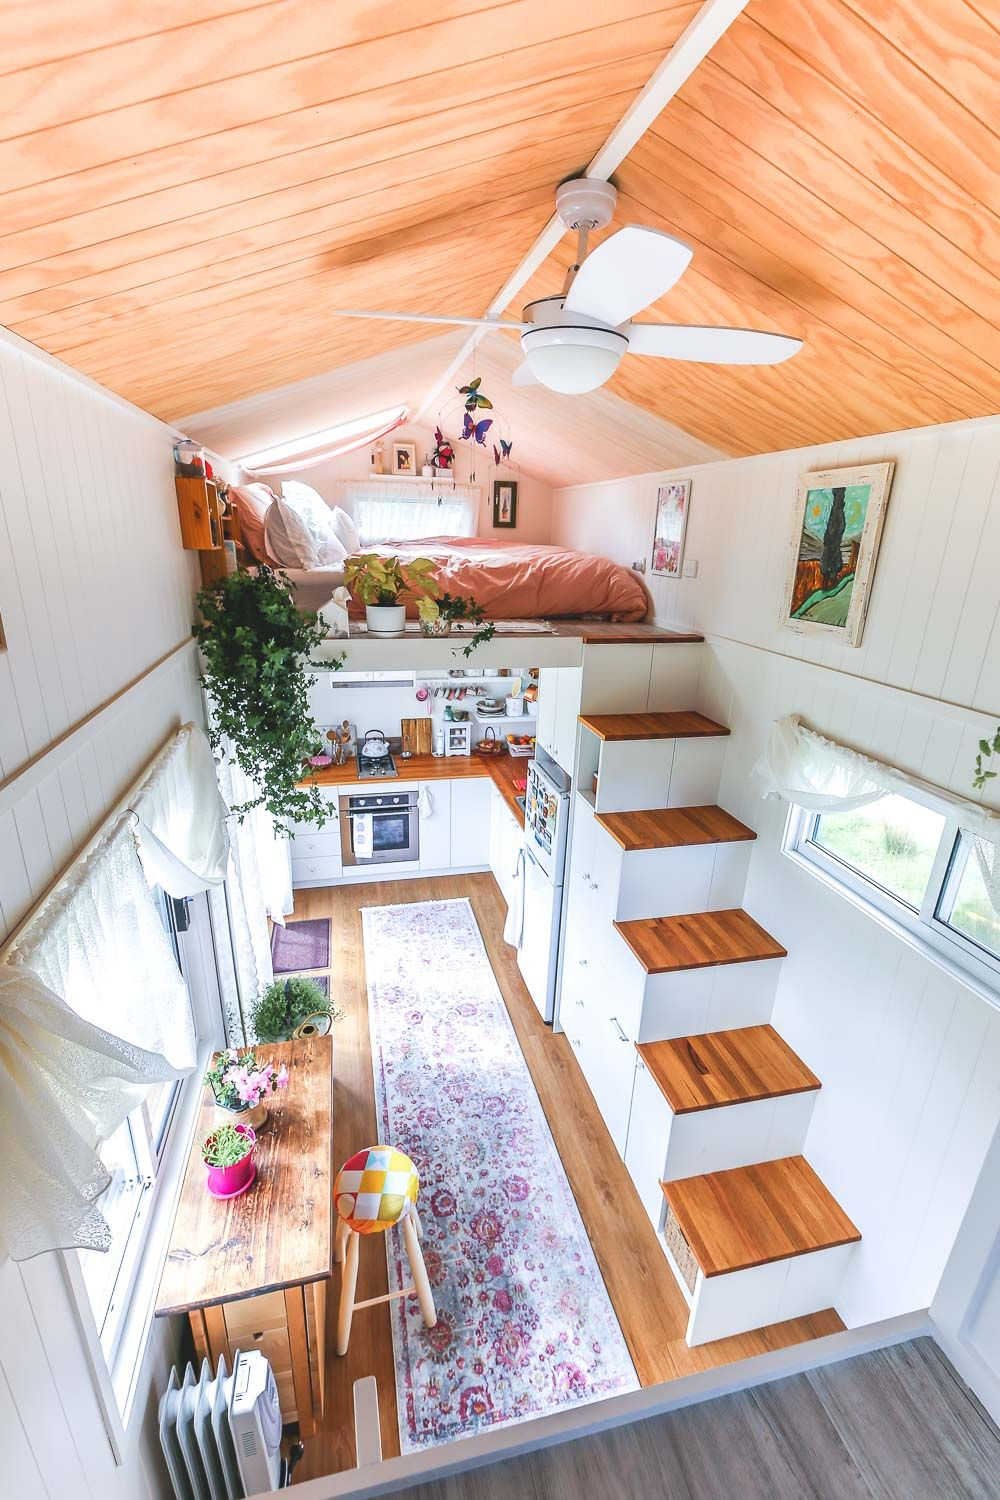 Woman S Dream Tiny House Even Has A Walk In Wardrobe Living Big In A Tiny House Tiny House Loft Tiny House Design Tiny House Decor